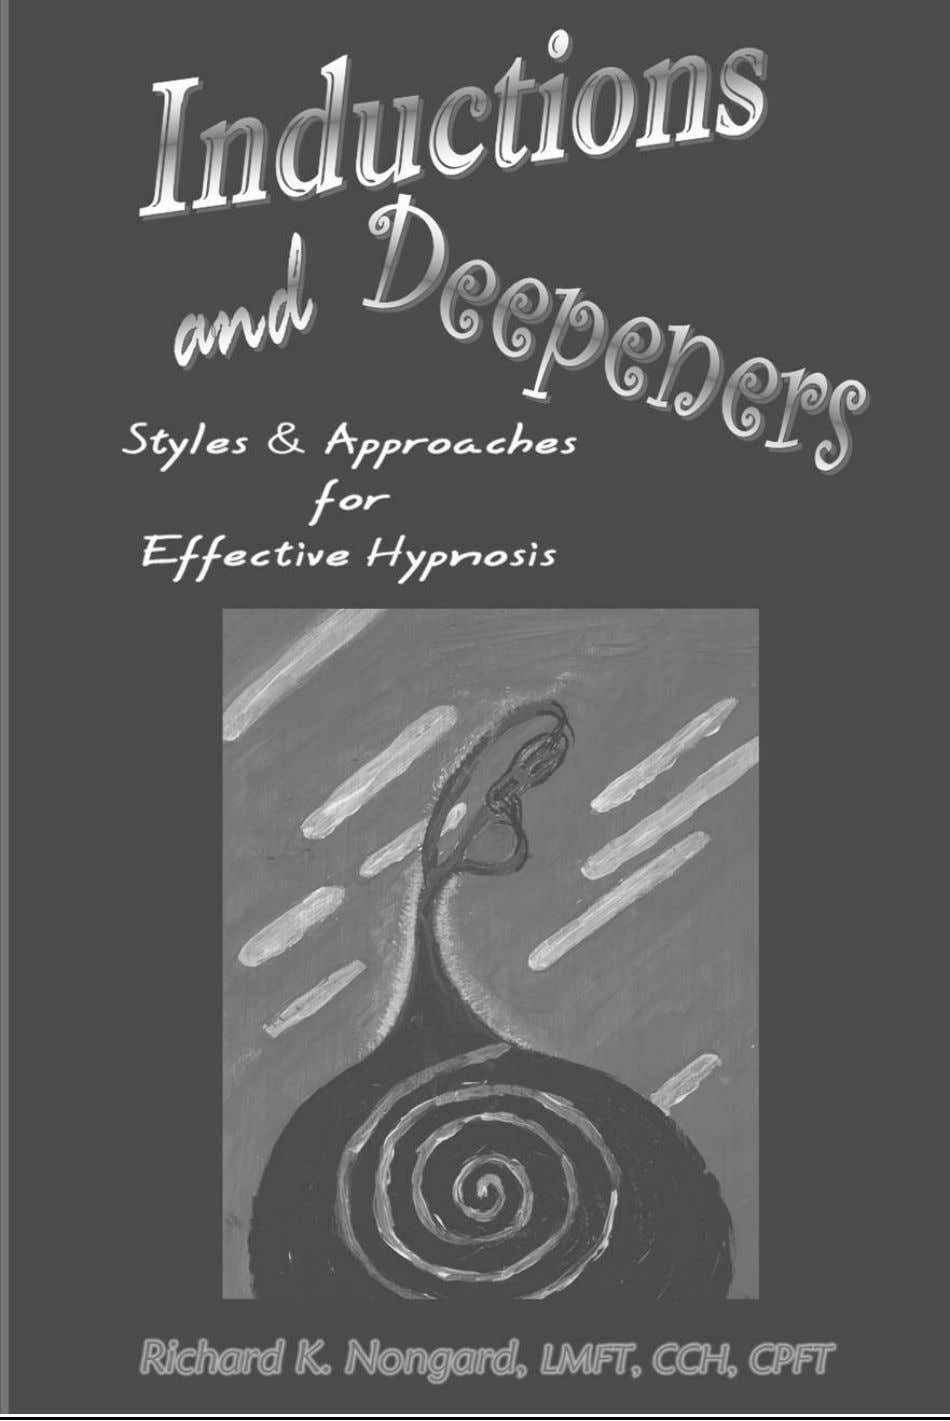 Inductions and Deepeners: Styles and Approaches for Effective Hypnosis 1